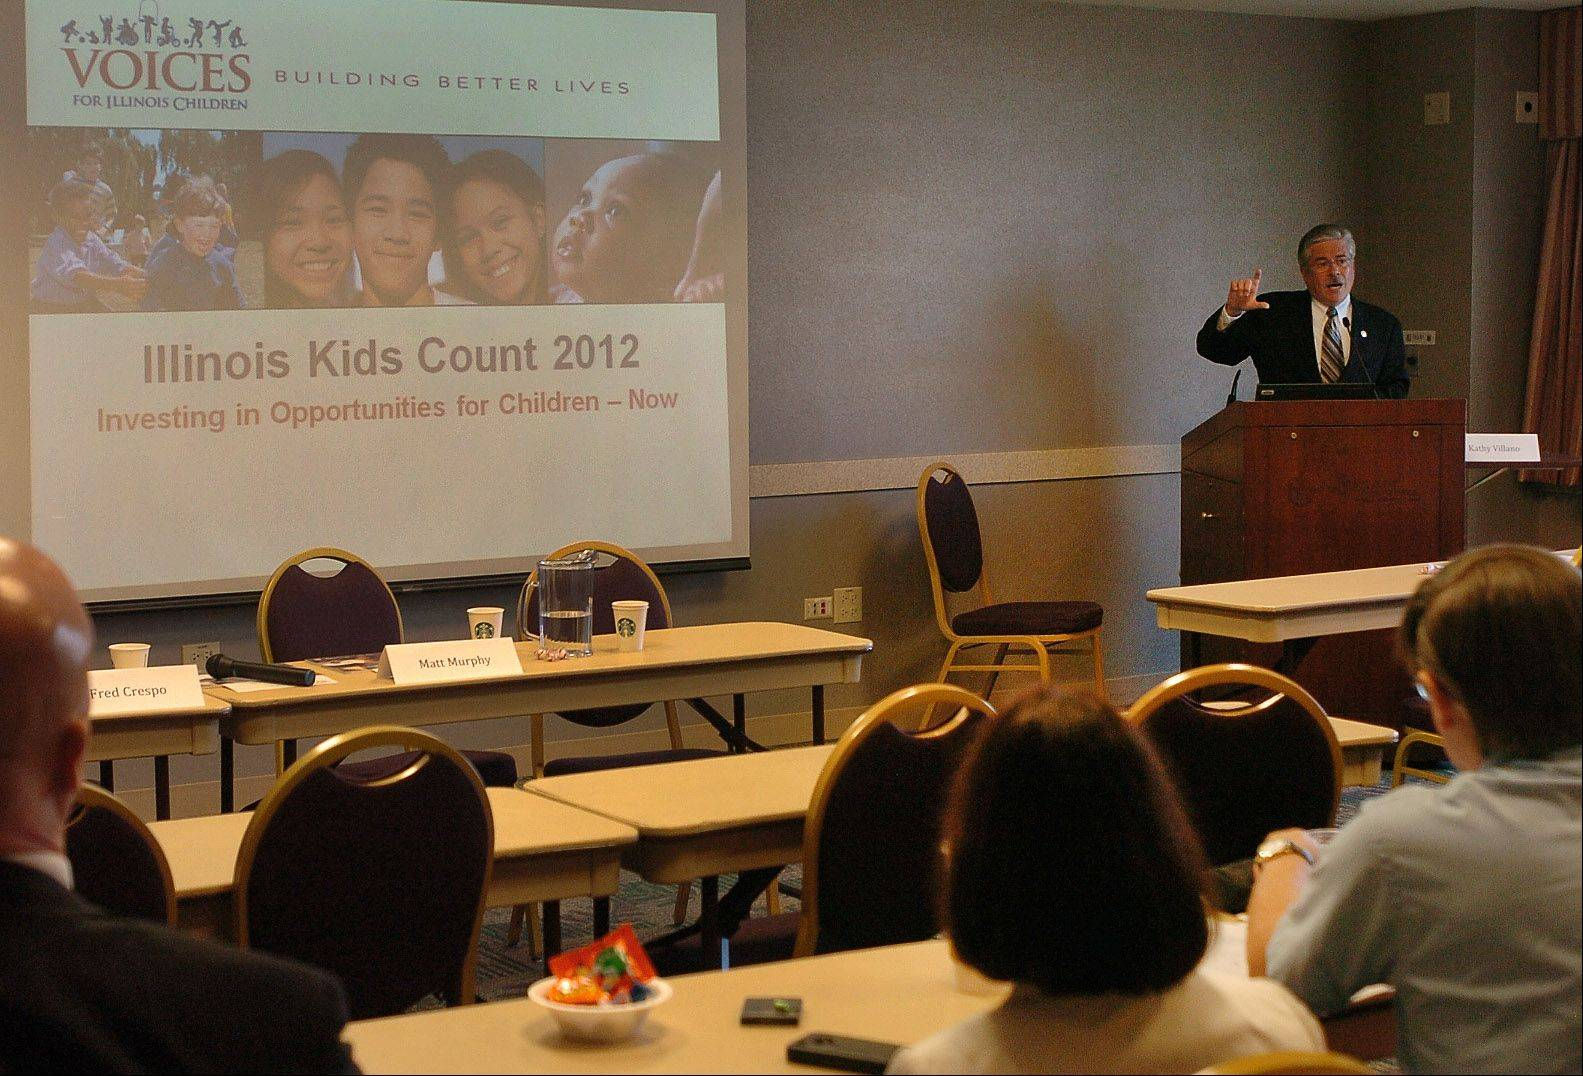 State Rep. Fred Crespo of Hoffman Estates takes part in a panel discussion during the Voices for Illinois Children's Illinois Kids Count Symposium at St. Alexius Medical Center in Hoffman Estates.